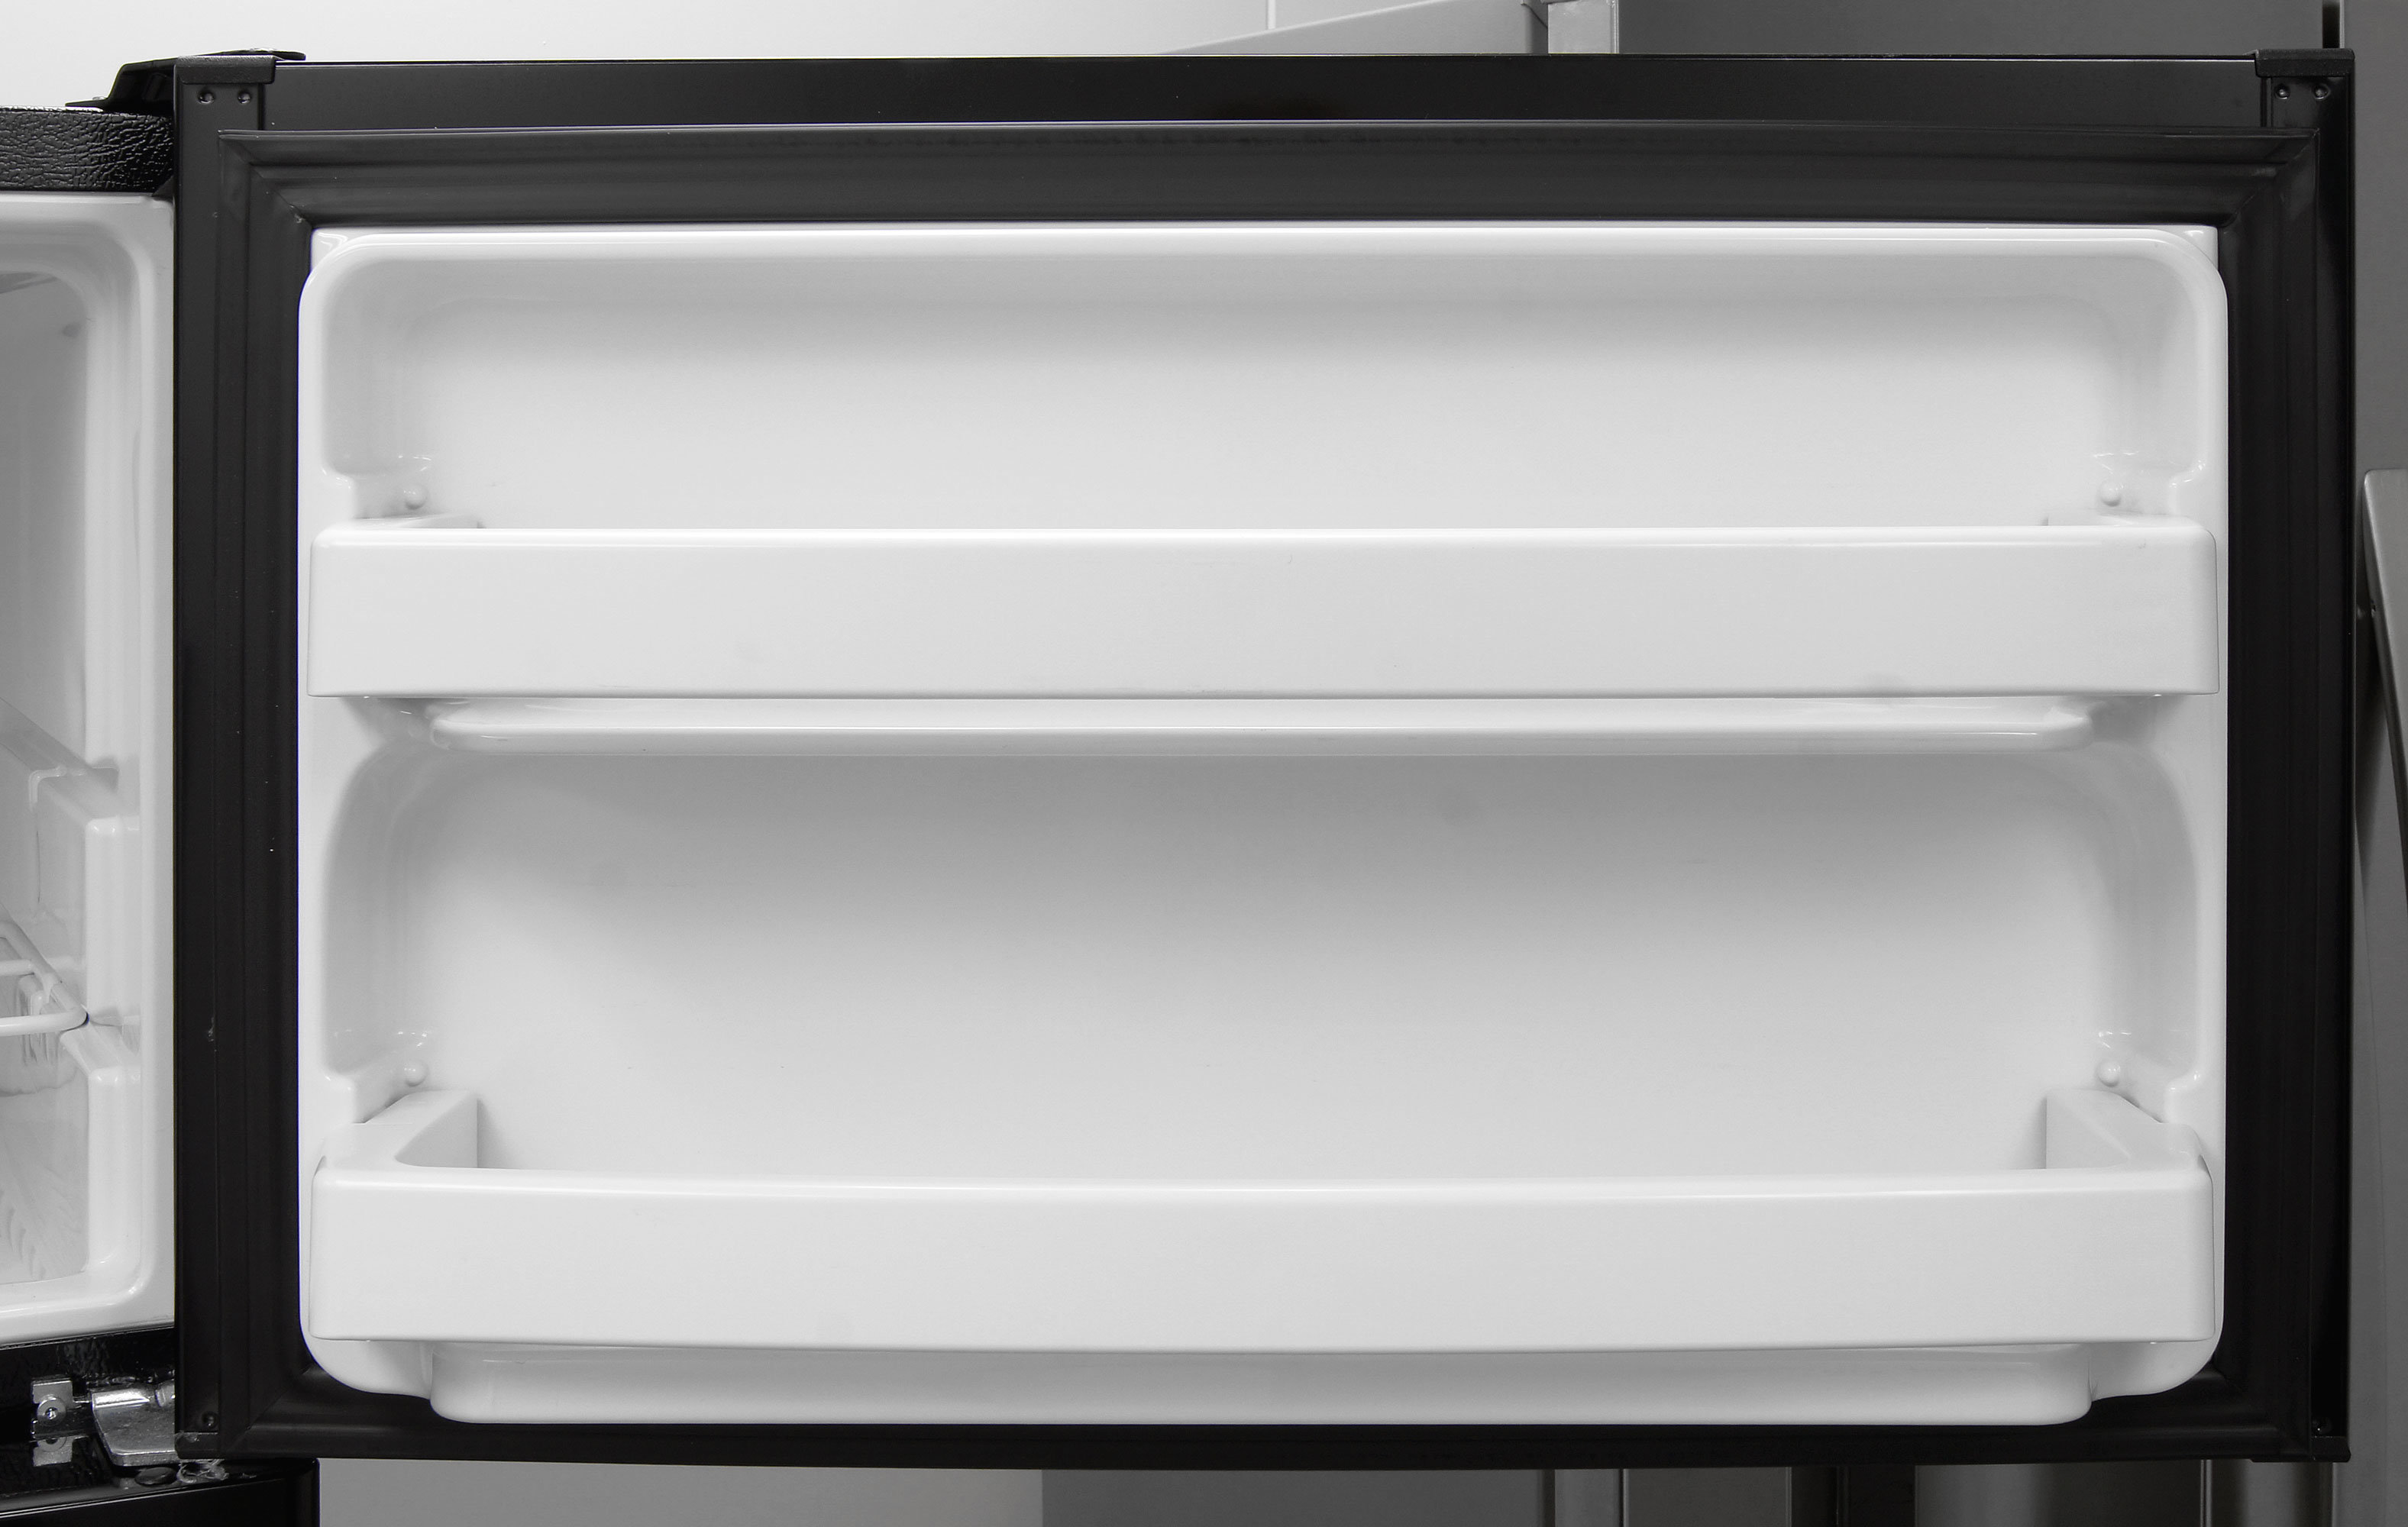 Standard fixed shelves are found on the freezer door of the GE GIE16DGHBB.